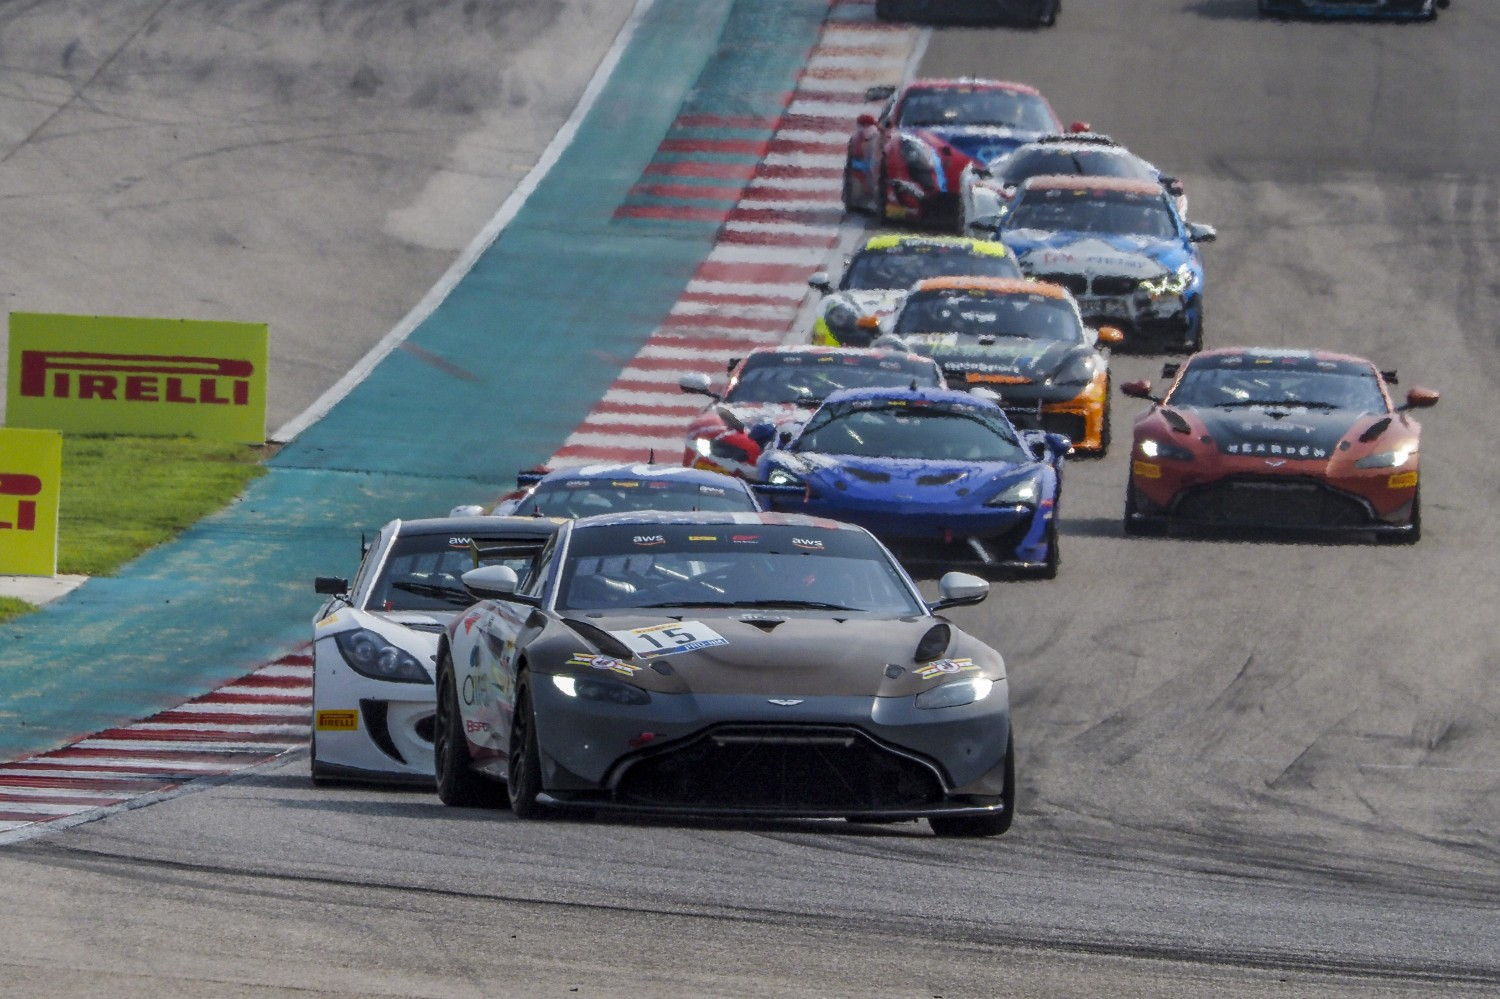 #15 Aston Martin Vantage GT4 of Bryan Putt and Kenton Koch, Bsport Racing, GT4 SprintX Pro-Am, SRO America, Circuit of the Americas, Austin TX, September 2020.  | Brian Cleary/SRO